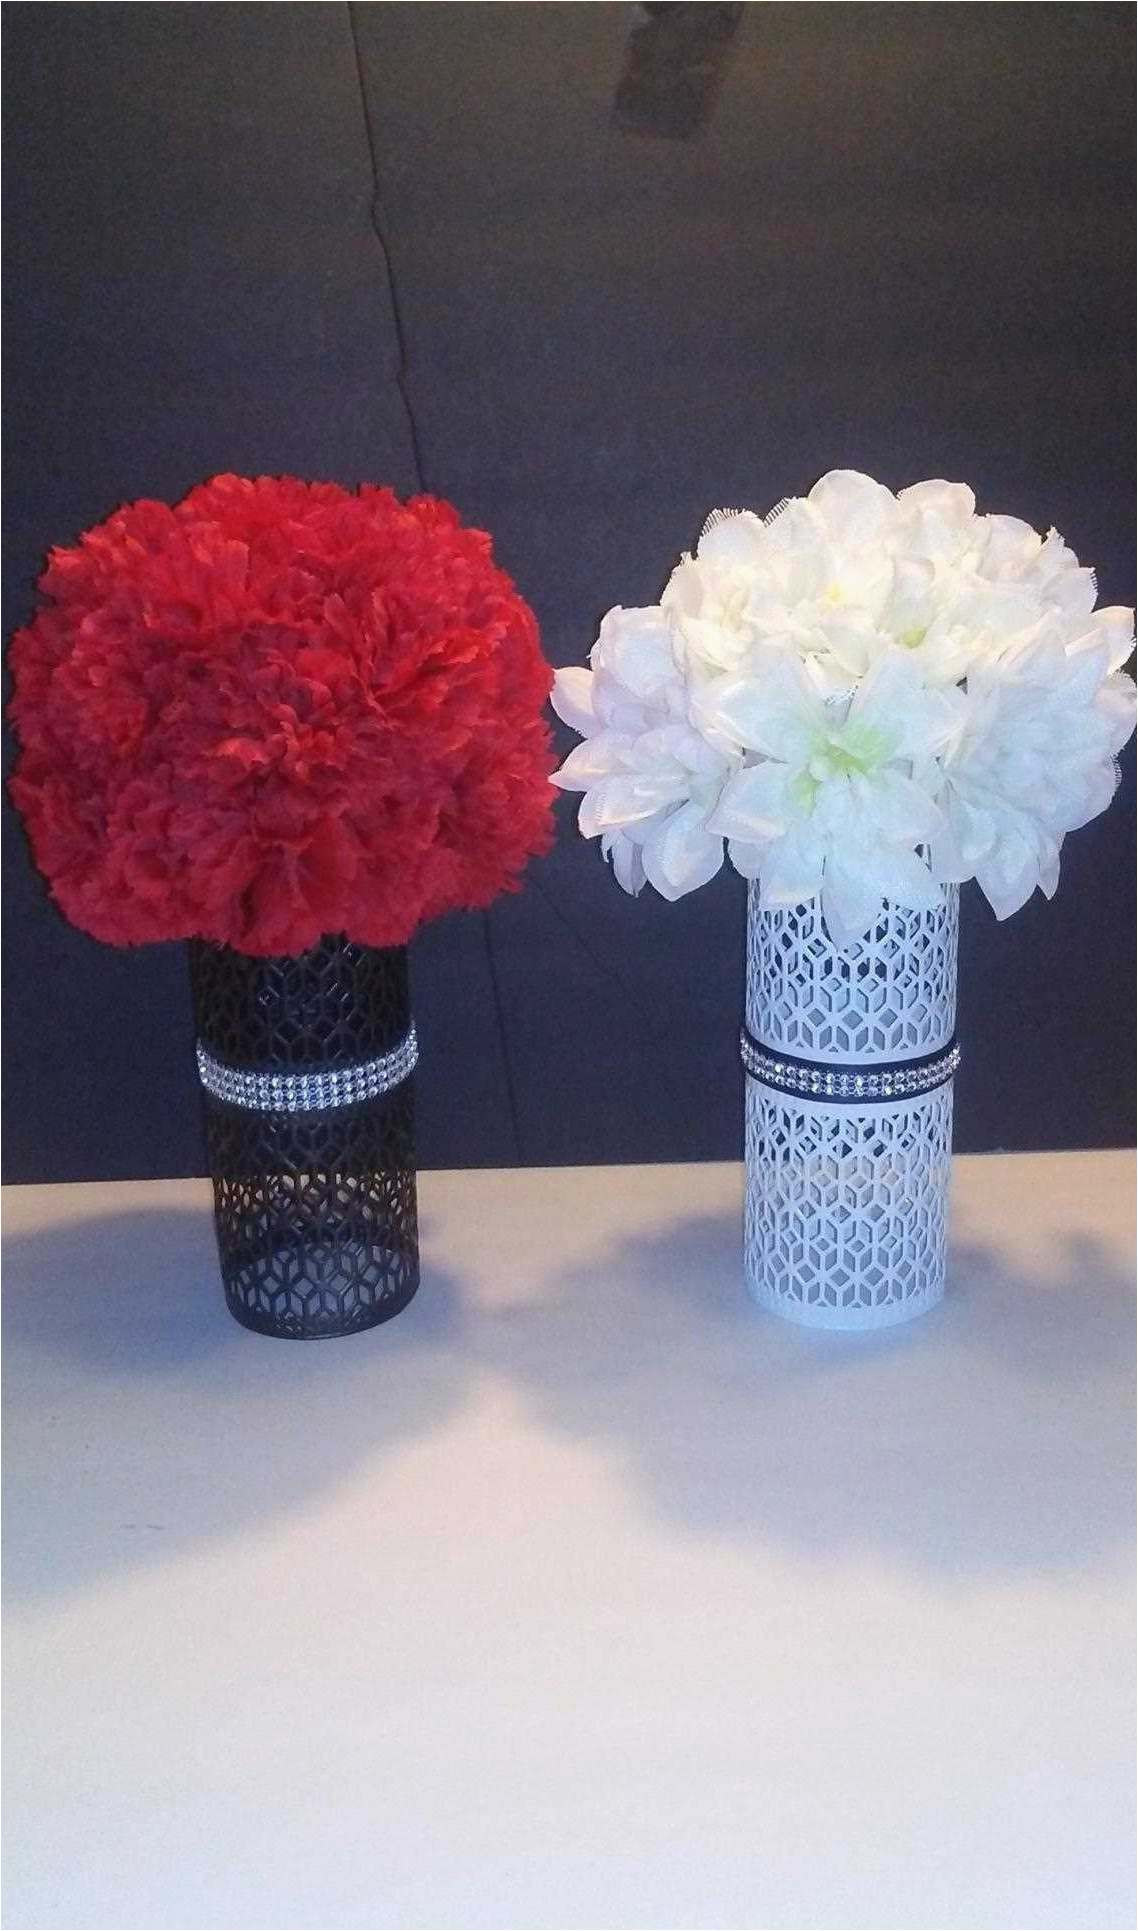 19 attractive Small Wood Vase 2021 free download small wood vase of handmade decoration for your plan dollar tree wedding decorations intended for handmade decoration idea dollar tree wedding decorations awesome h vases dollar vase i 0d to